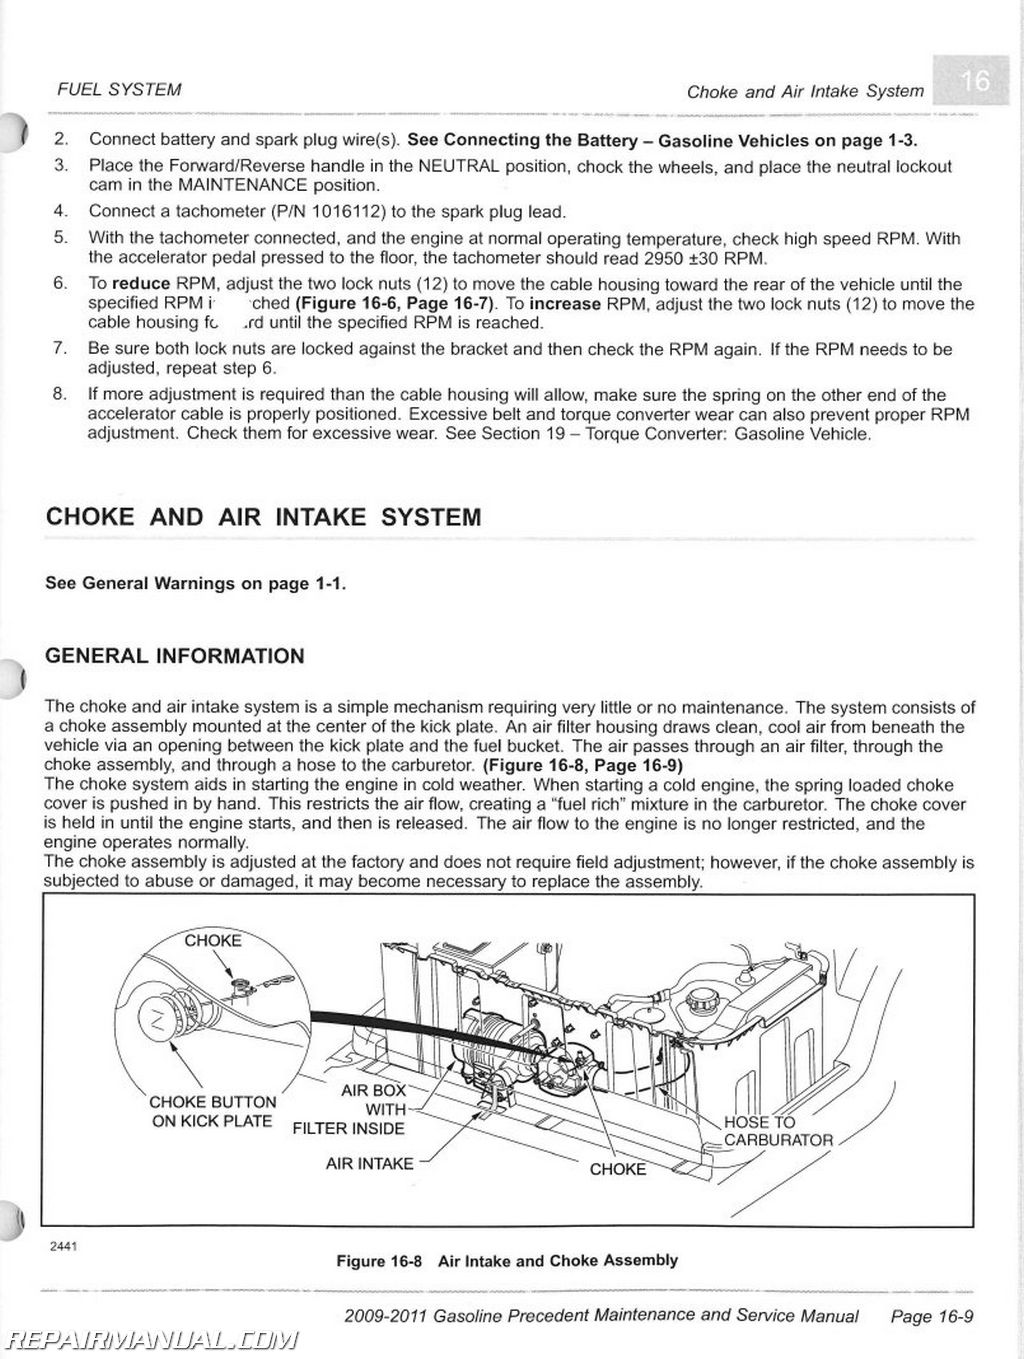 2009 2011 Club Car Gasoline Precedent Maintenance And Service Manual Onan Fuel Pump Wiring Diagram